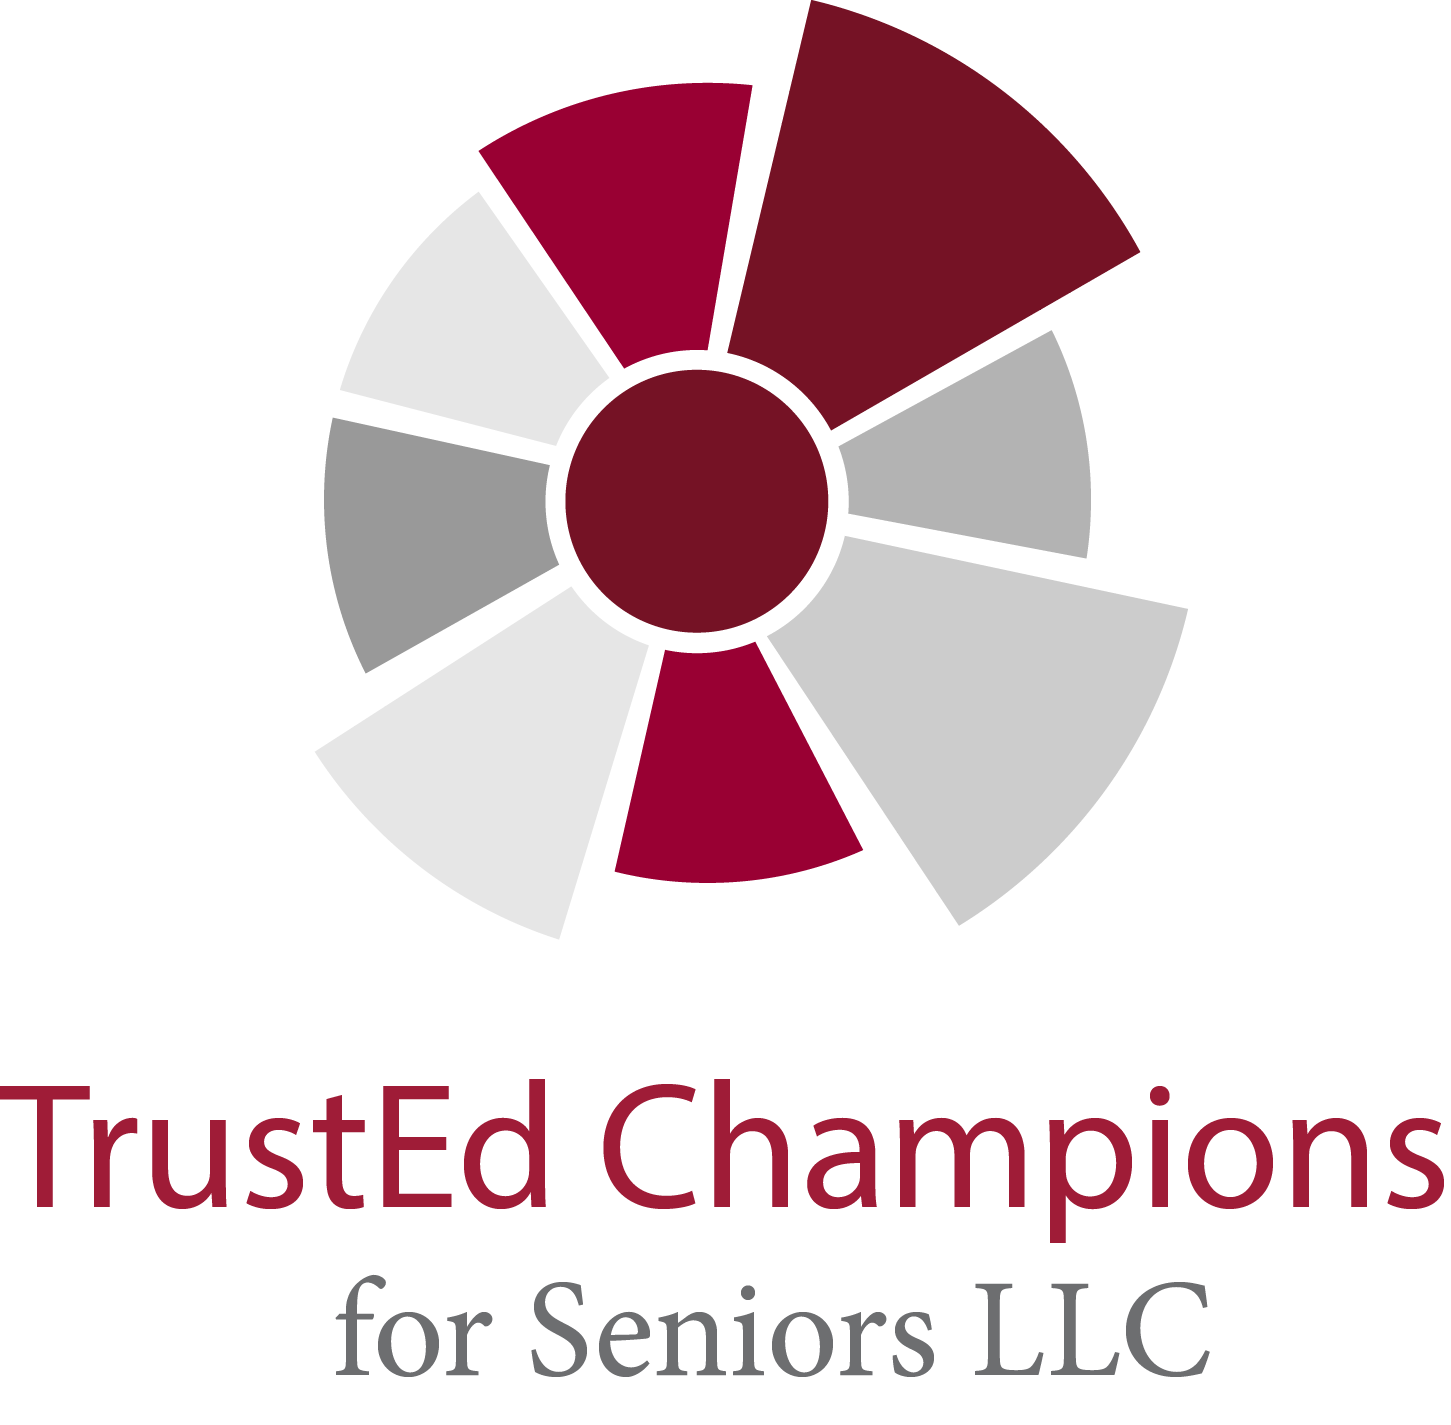 TrustEd Champions for Seniors LLC